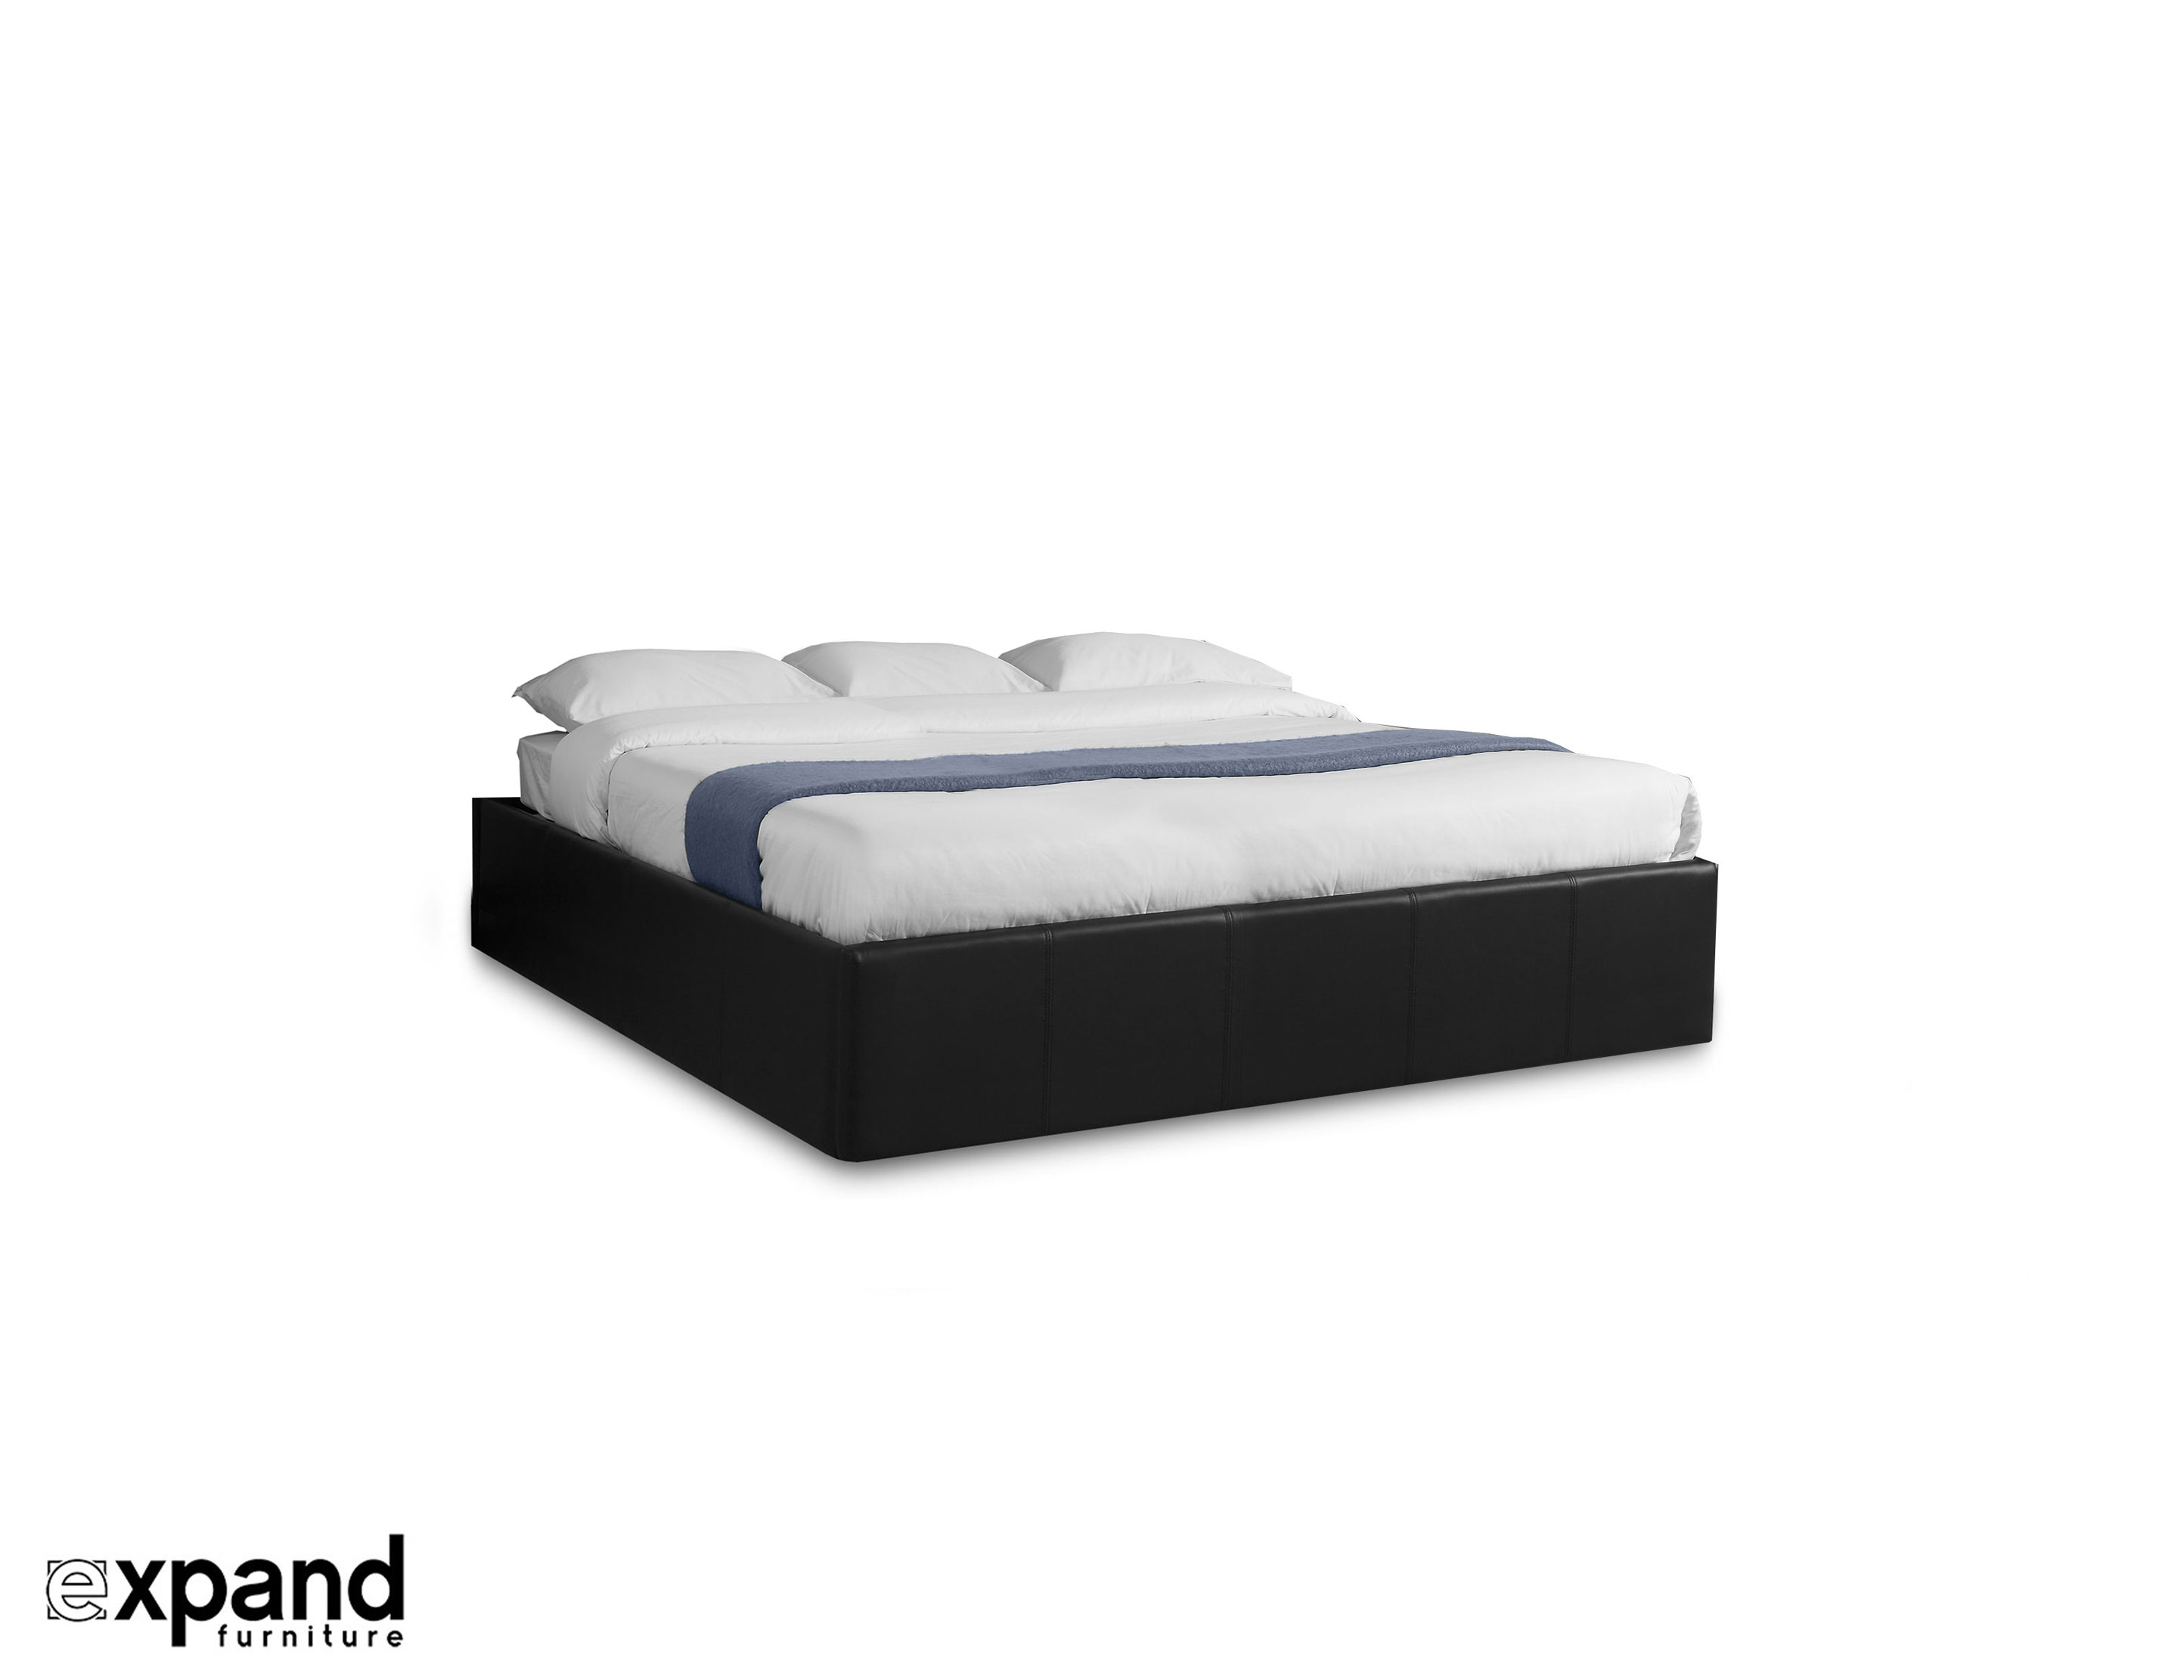 a08194f41dc6 Reveal: King - side lifting storage bed | Expand Furniture - Folding ...